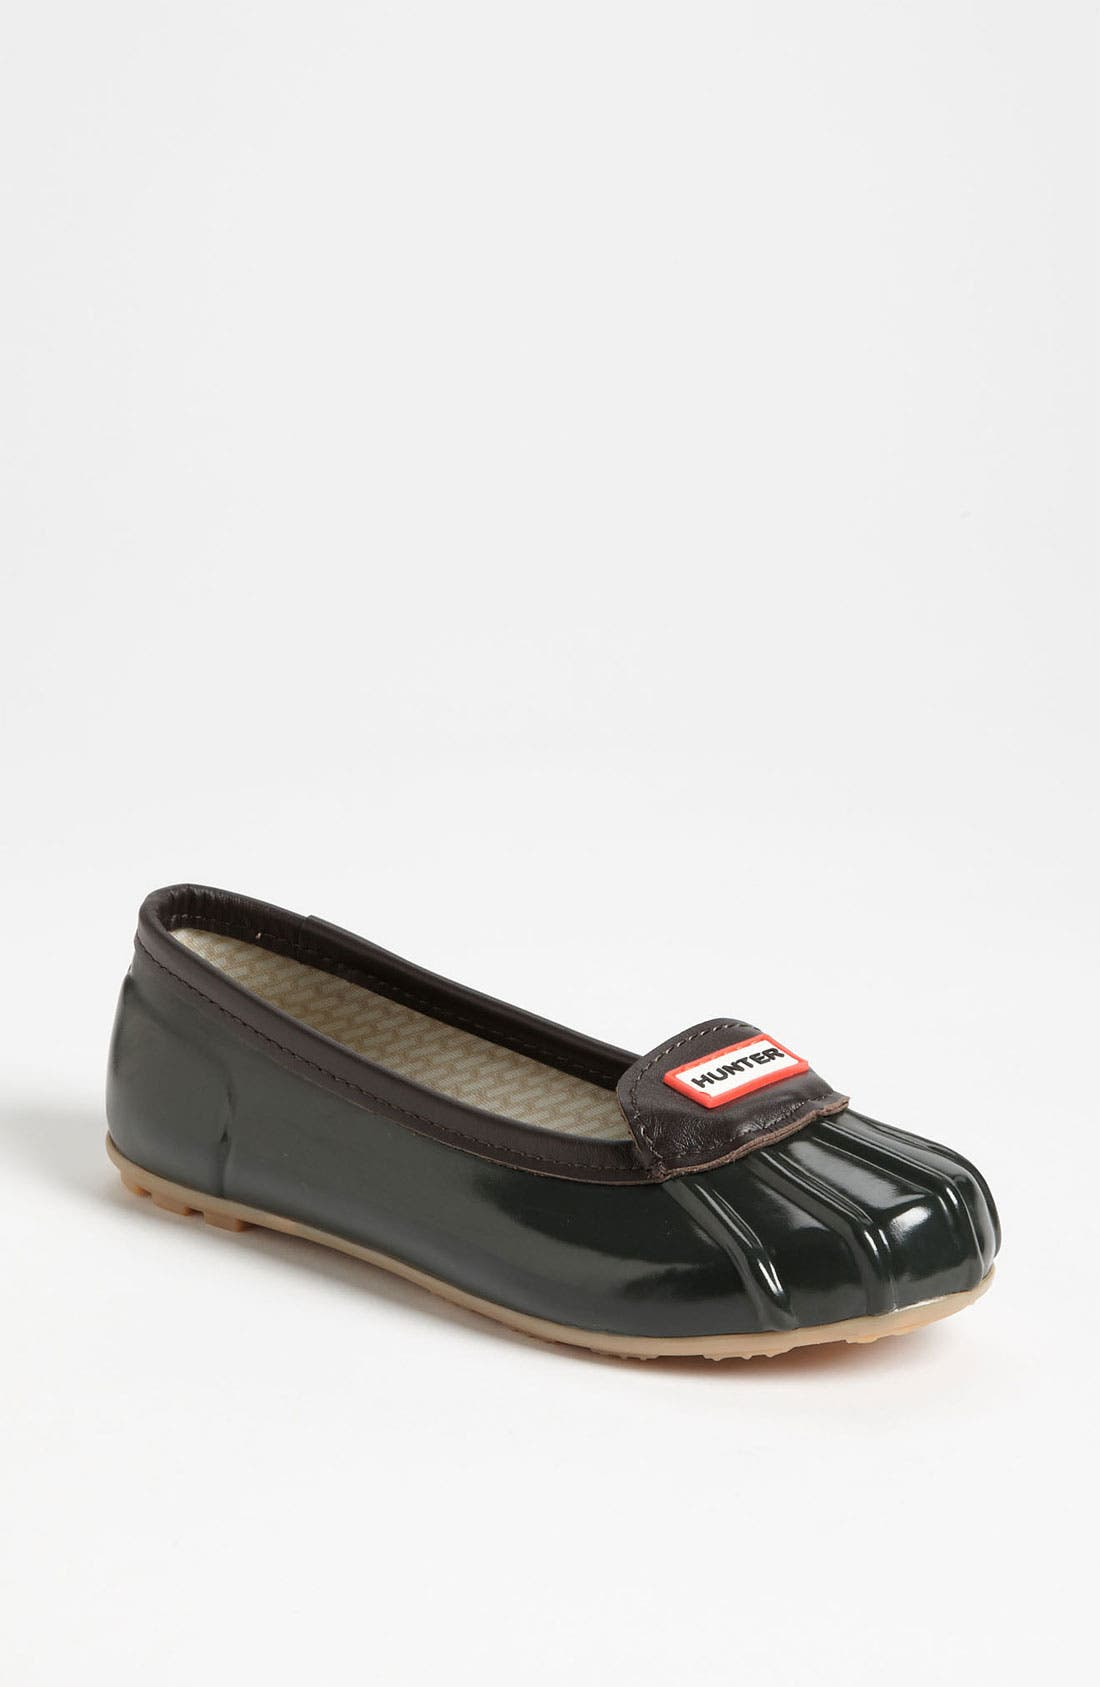 HUNTER 'Jena' Waterproof Flat, Main, color, 301